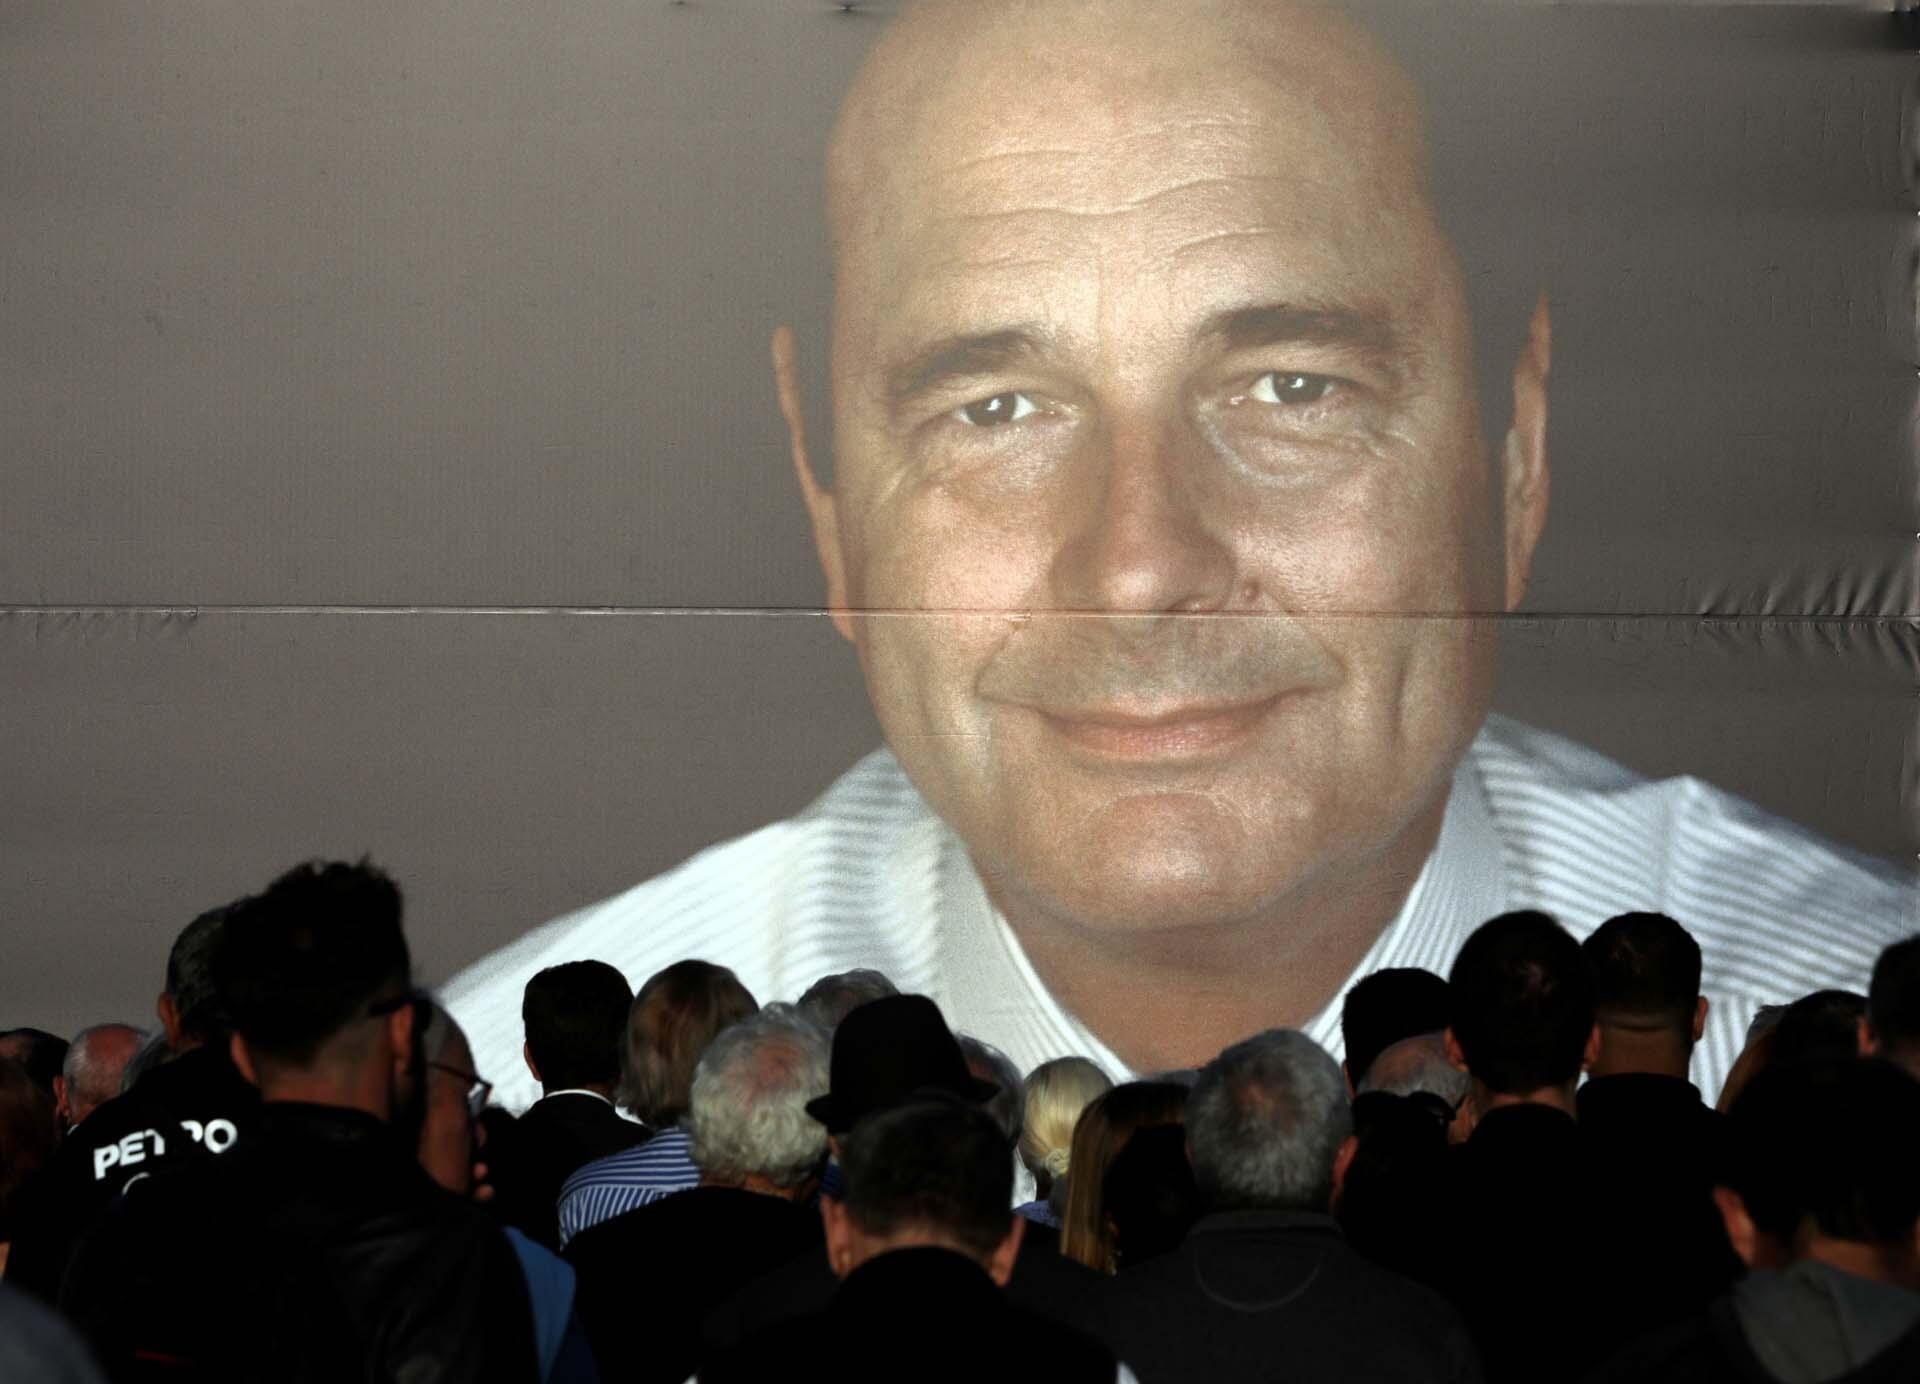 People gather to pay tribute to late former French President Jacques Chirac in Nice, France, September 27, 2019.